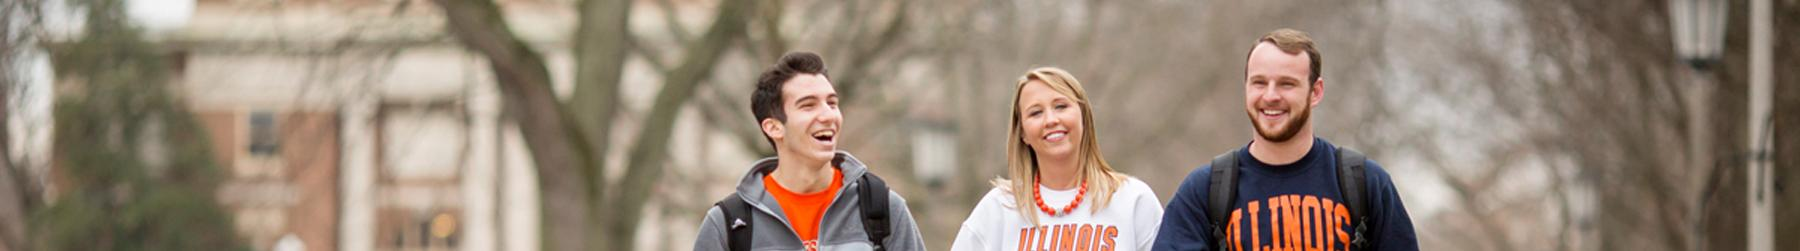 Three students sporting Illinois gear laugh together as they stroll side by side through the Main Quad.